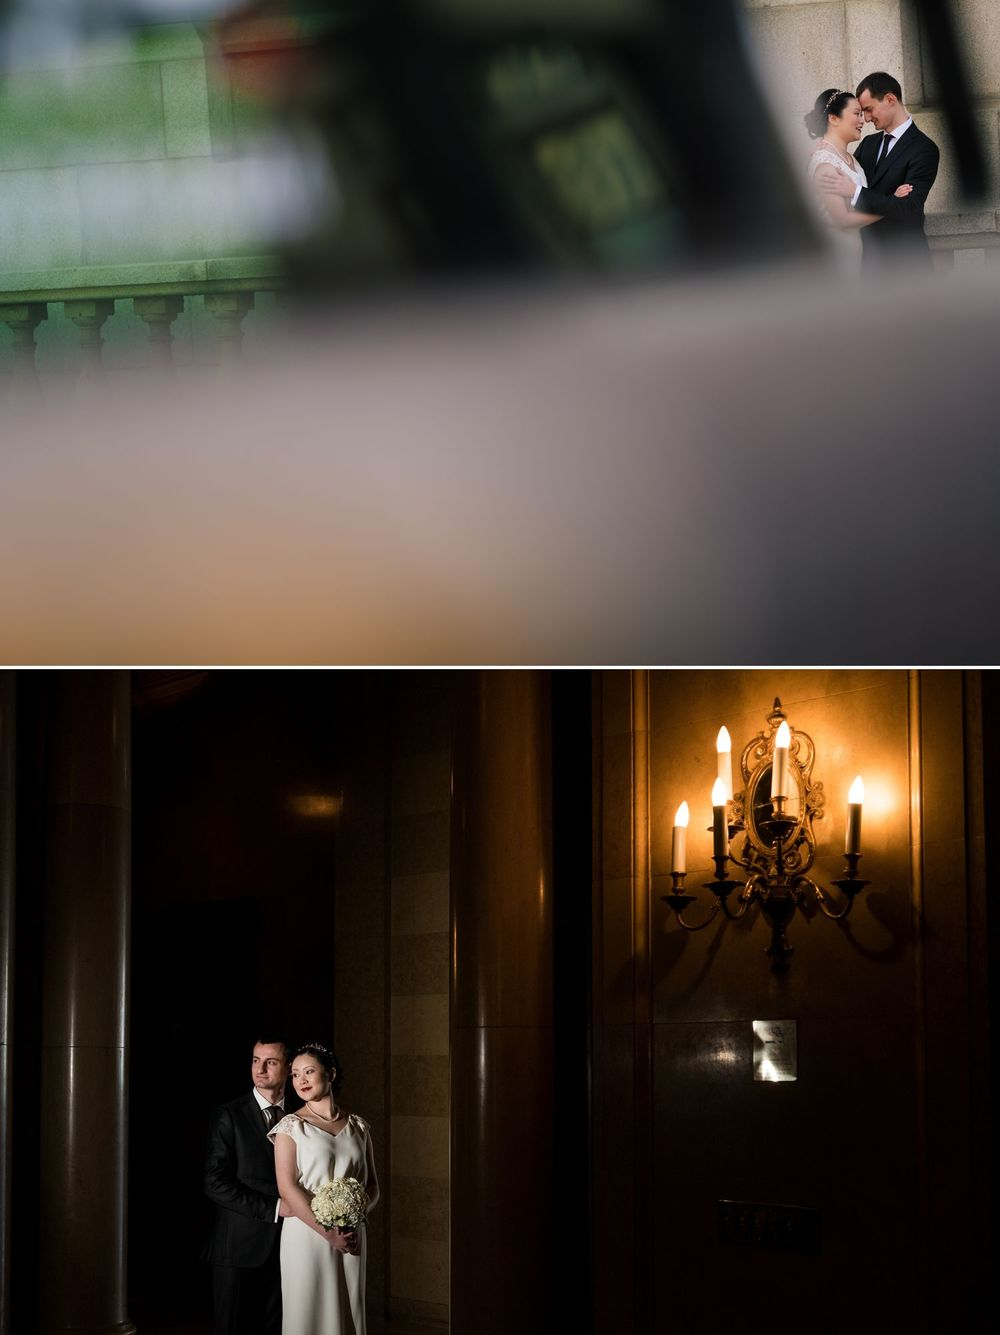 A portrait of the bride and groom inside the Chateau Laurier